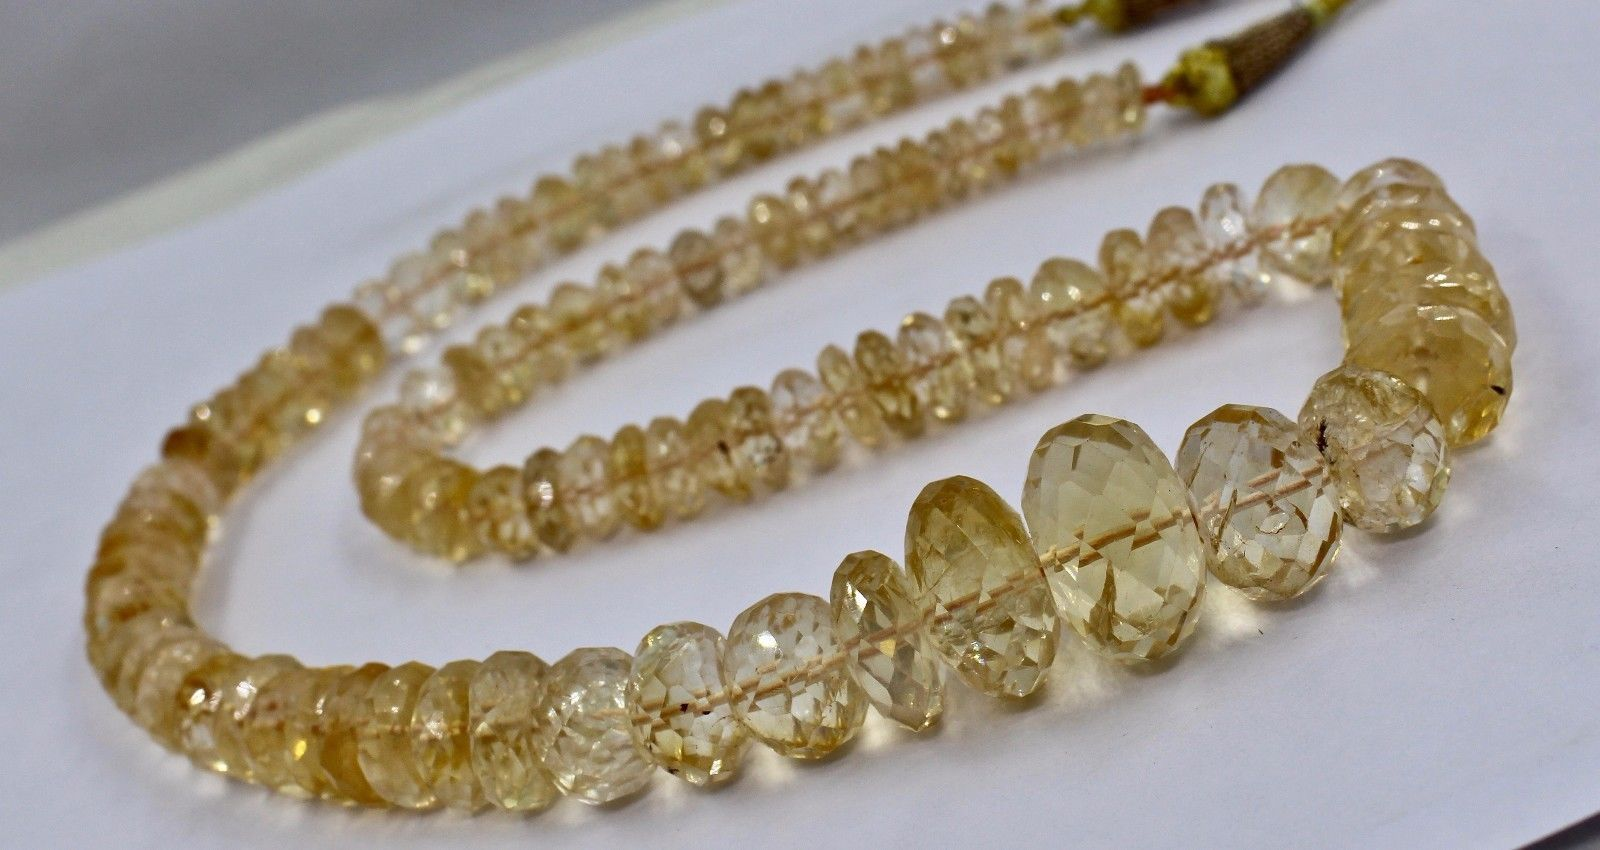 NATURAL YELLOW CITRINE BEADS FACETED ROUND 1 LINE 530 CARATS GEMSTONE NECKLACE